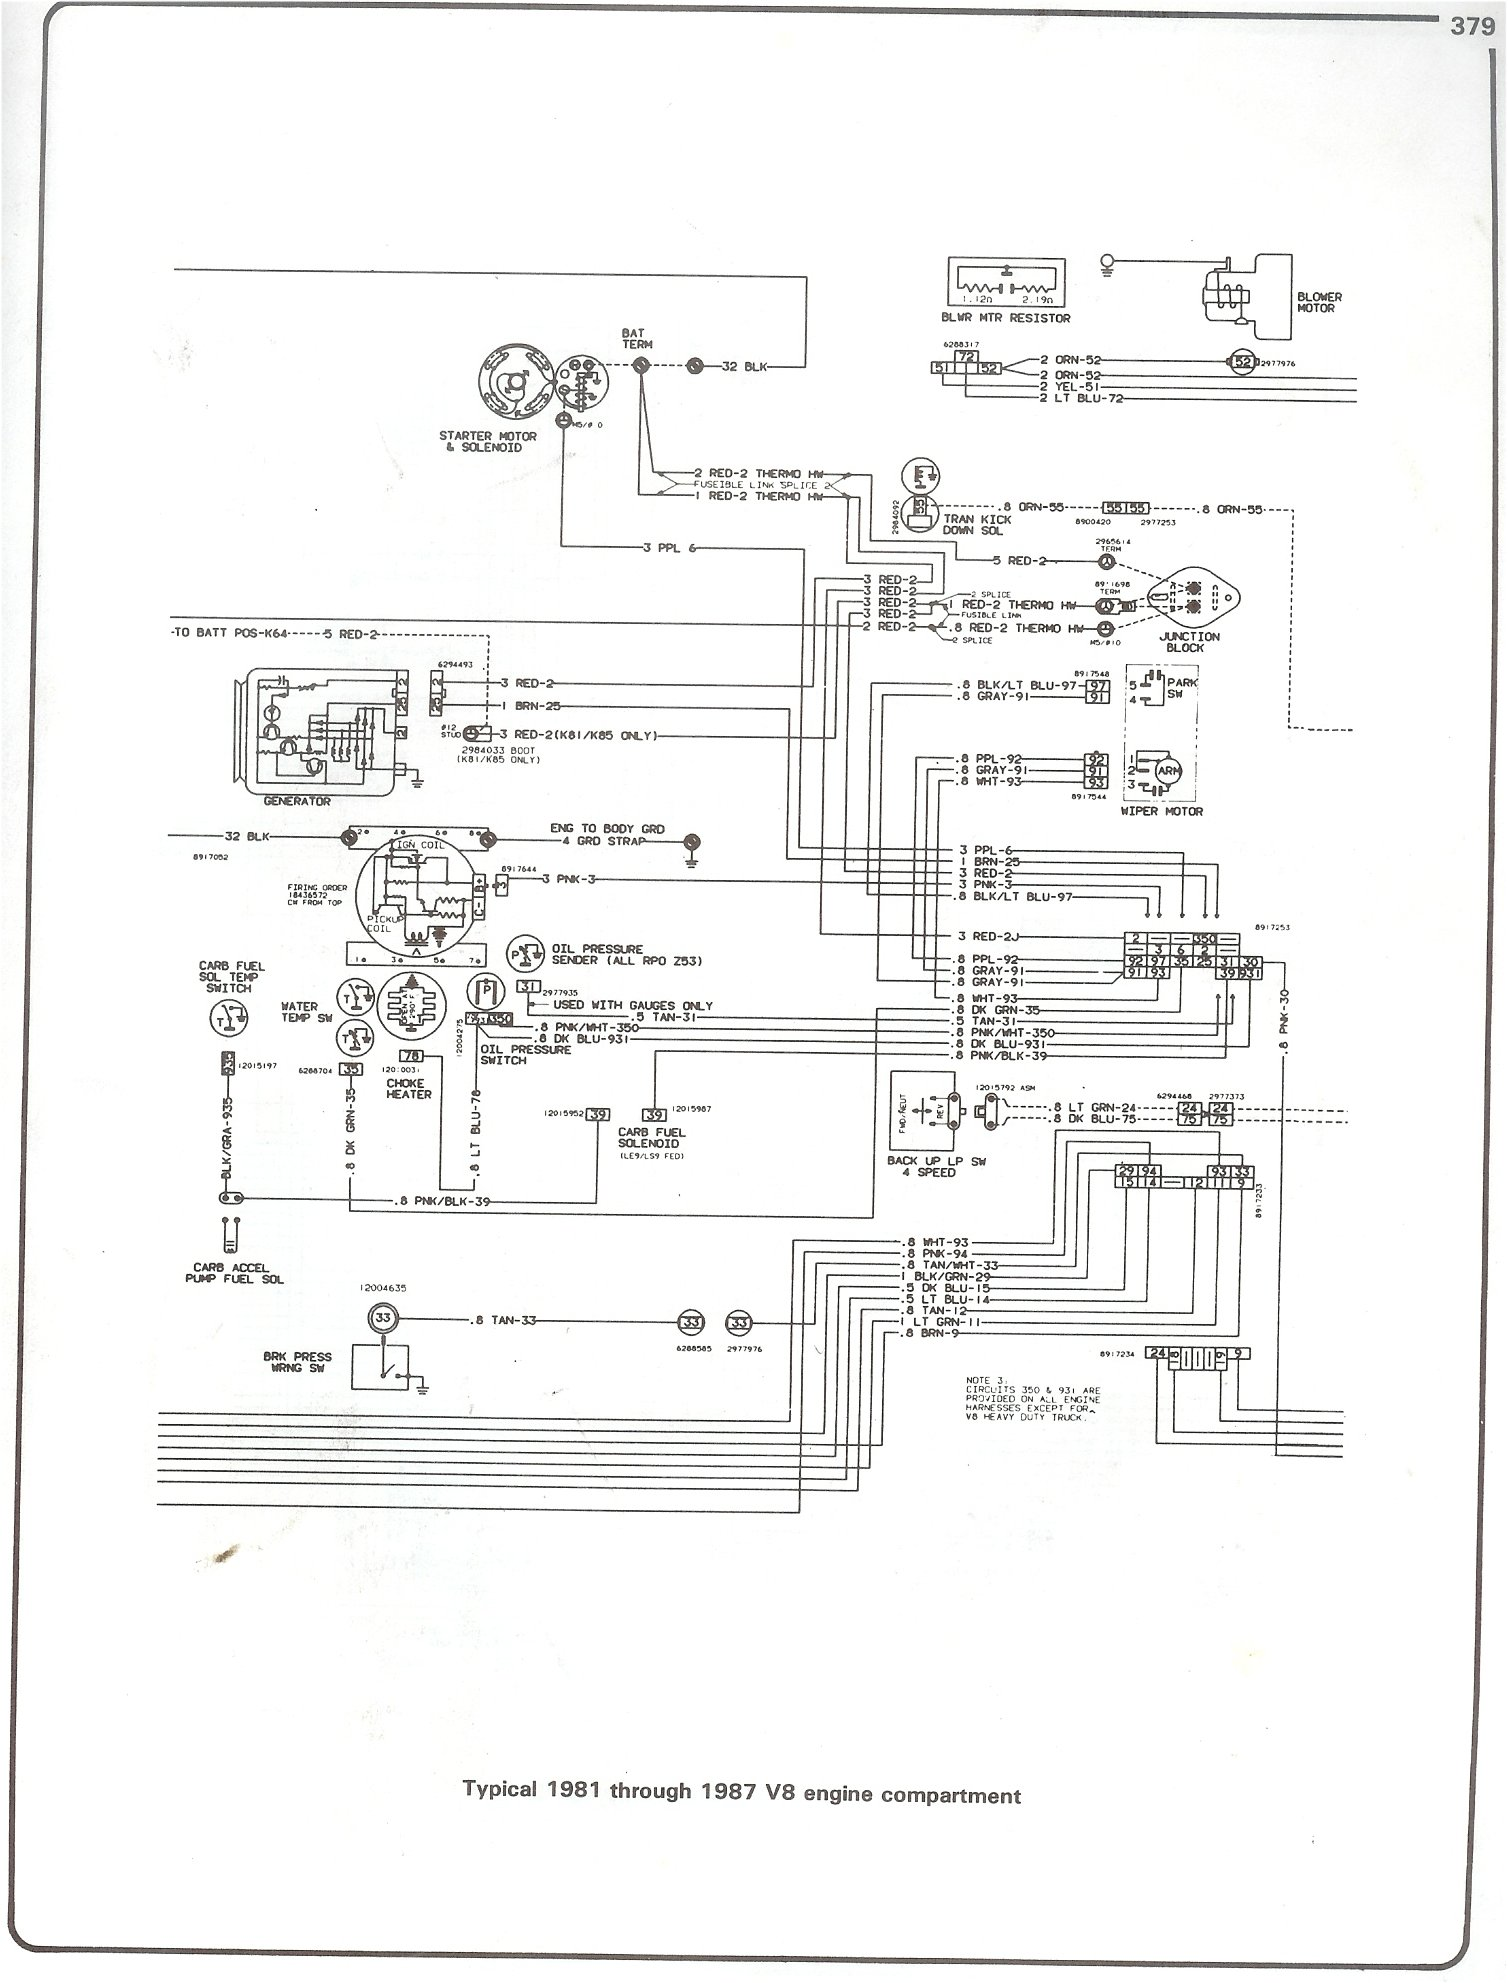 complete 73 87 wiring diagrams 1979 k5 blazer wiring diagram 81 87 v8  engine compartment